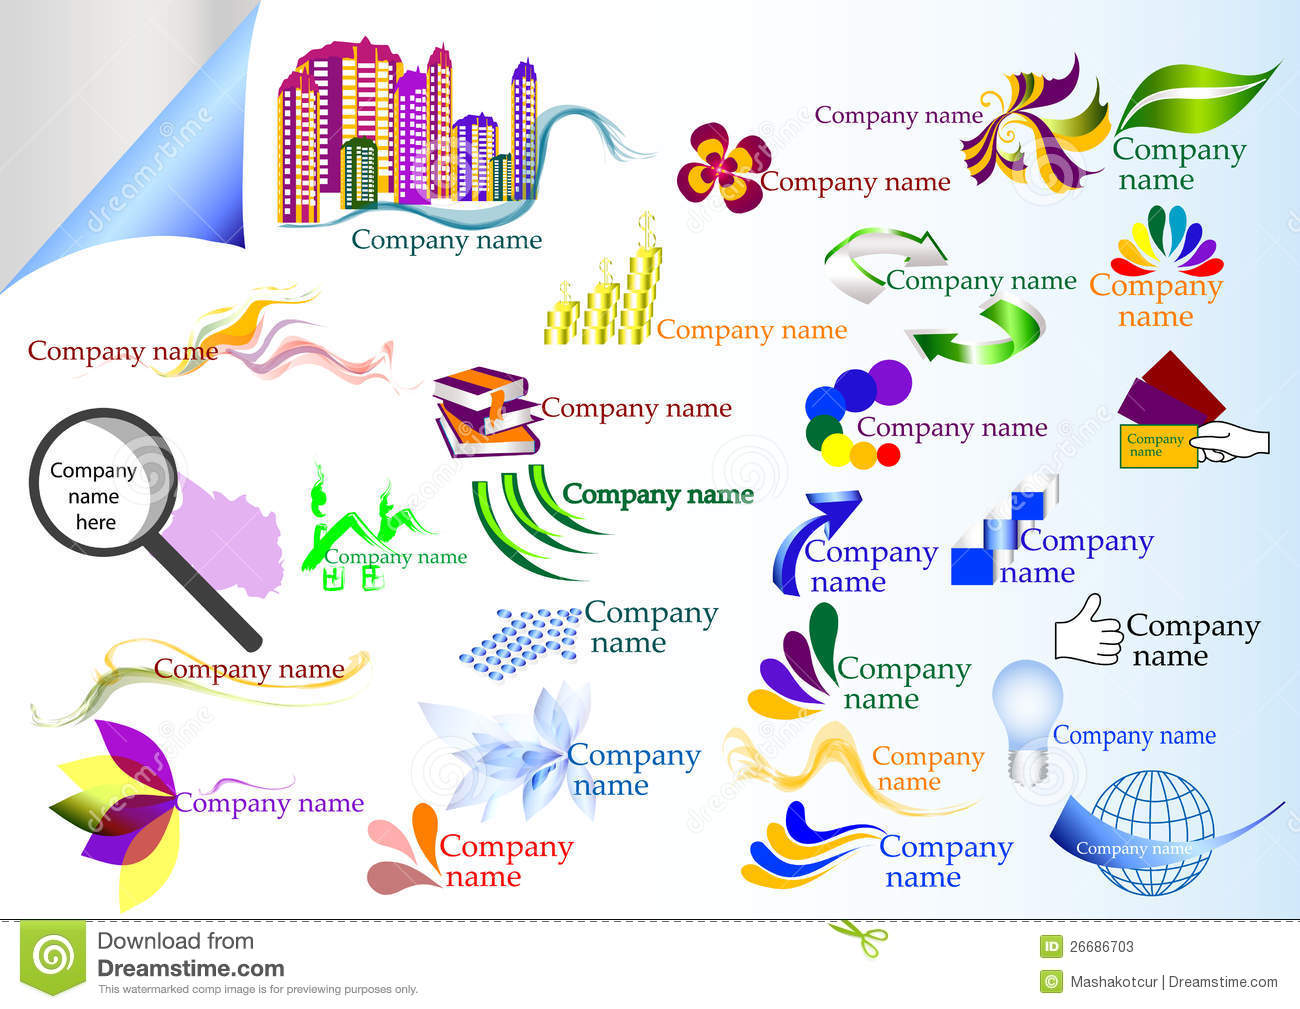 Collection Of Vector Company Labels Stock Photos - Image: 26686703